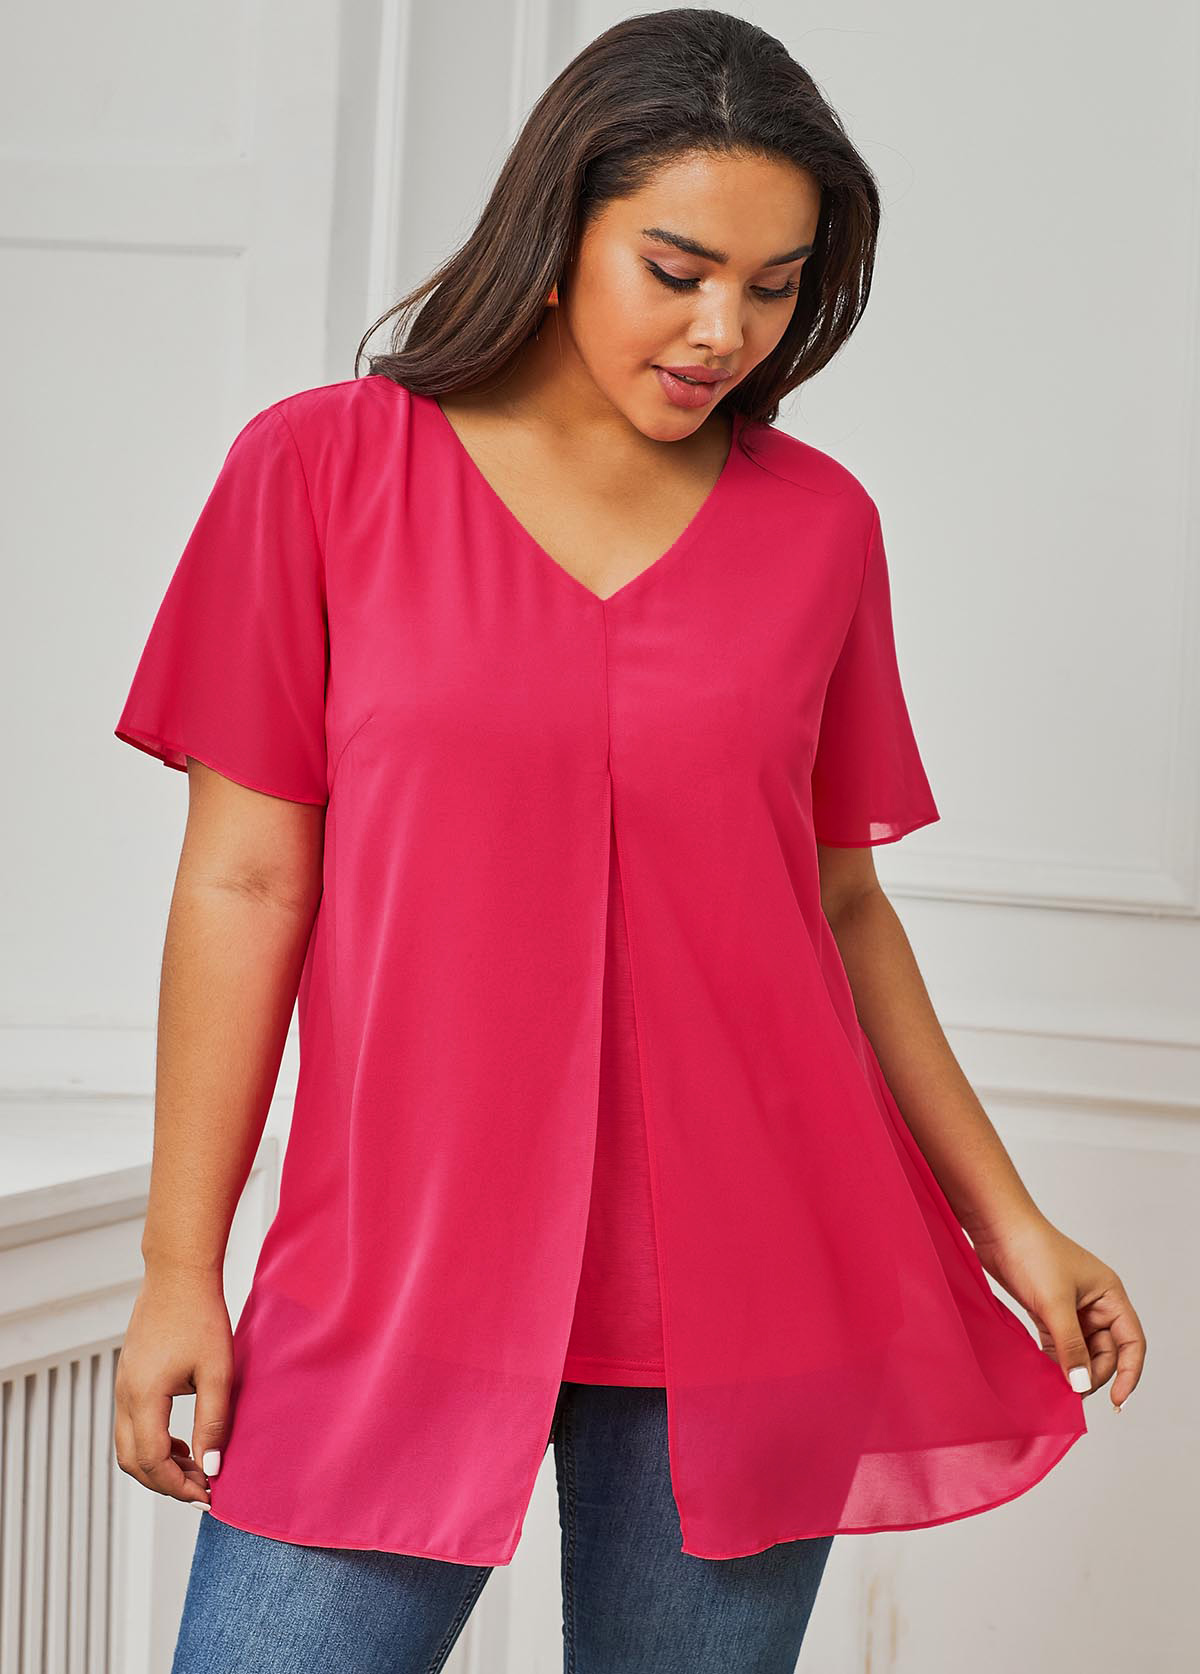 Pink V Neck Short Sleeve Plus Size T Shirt